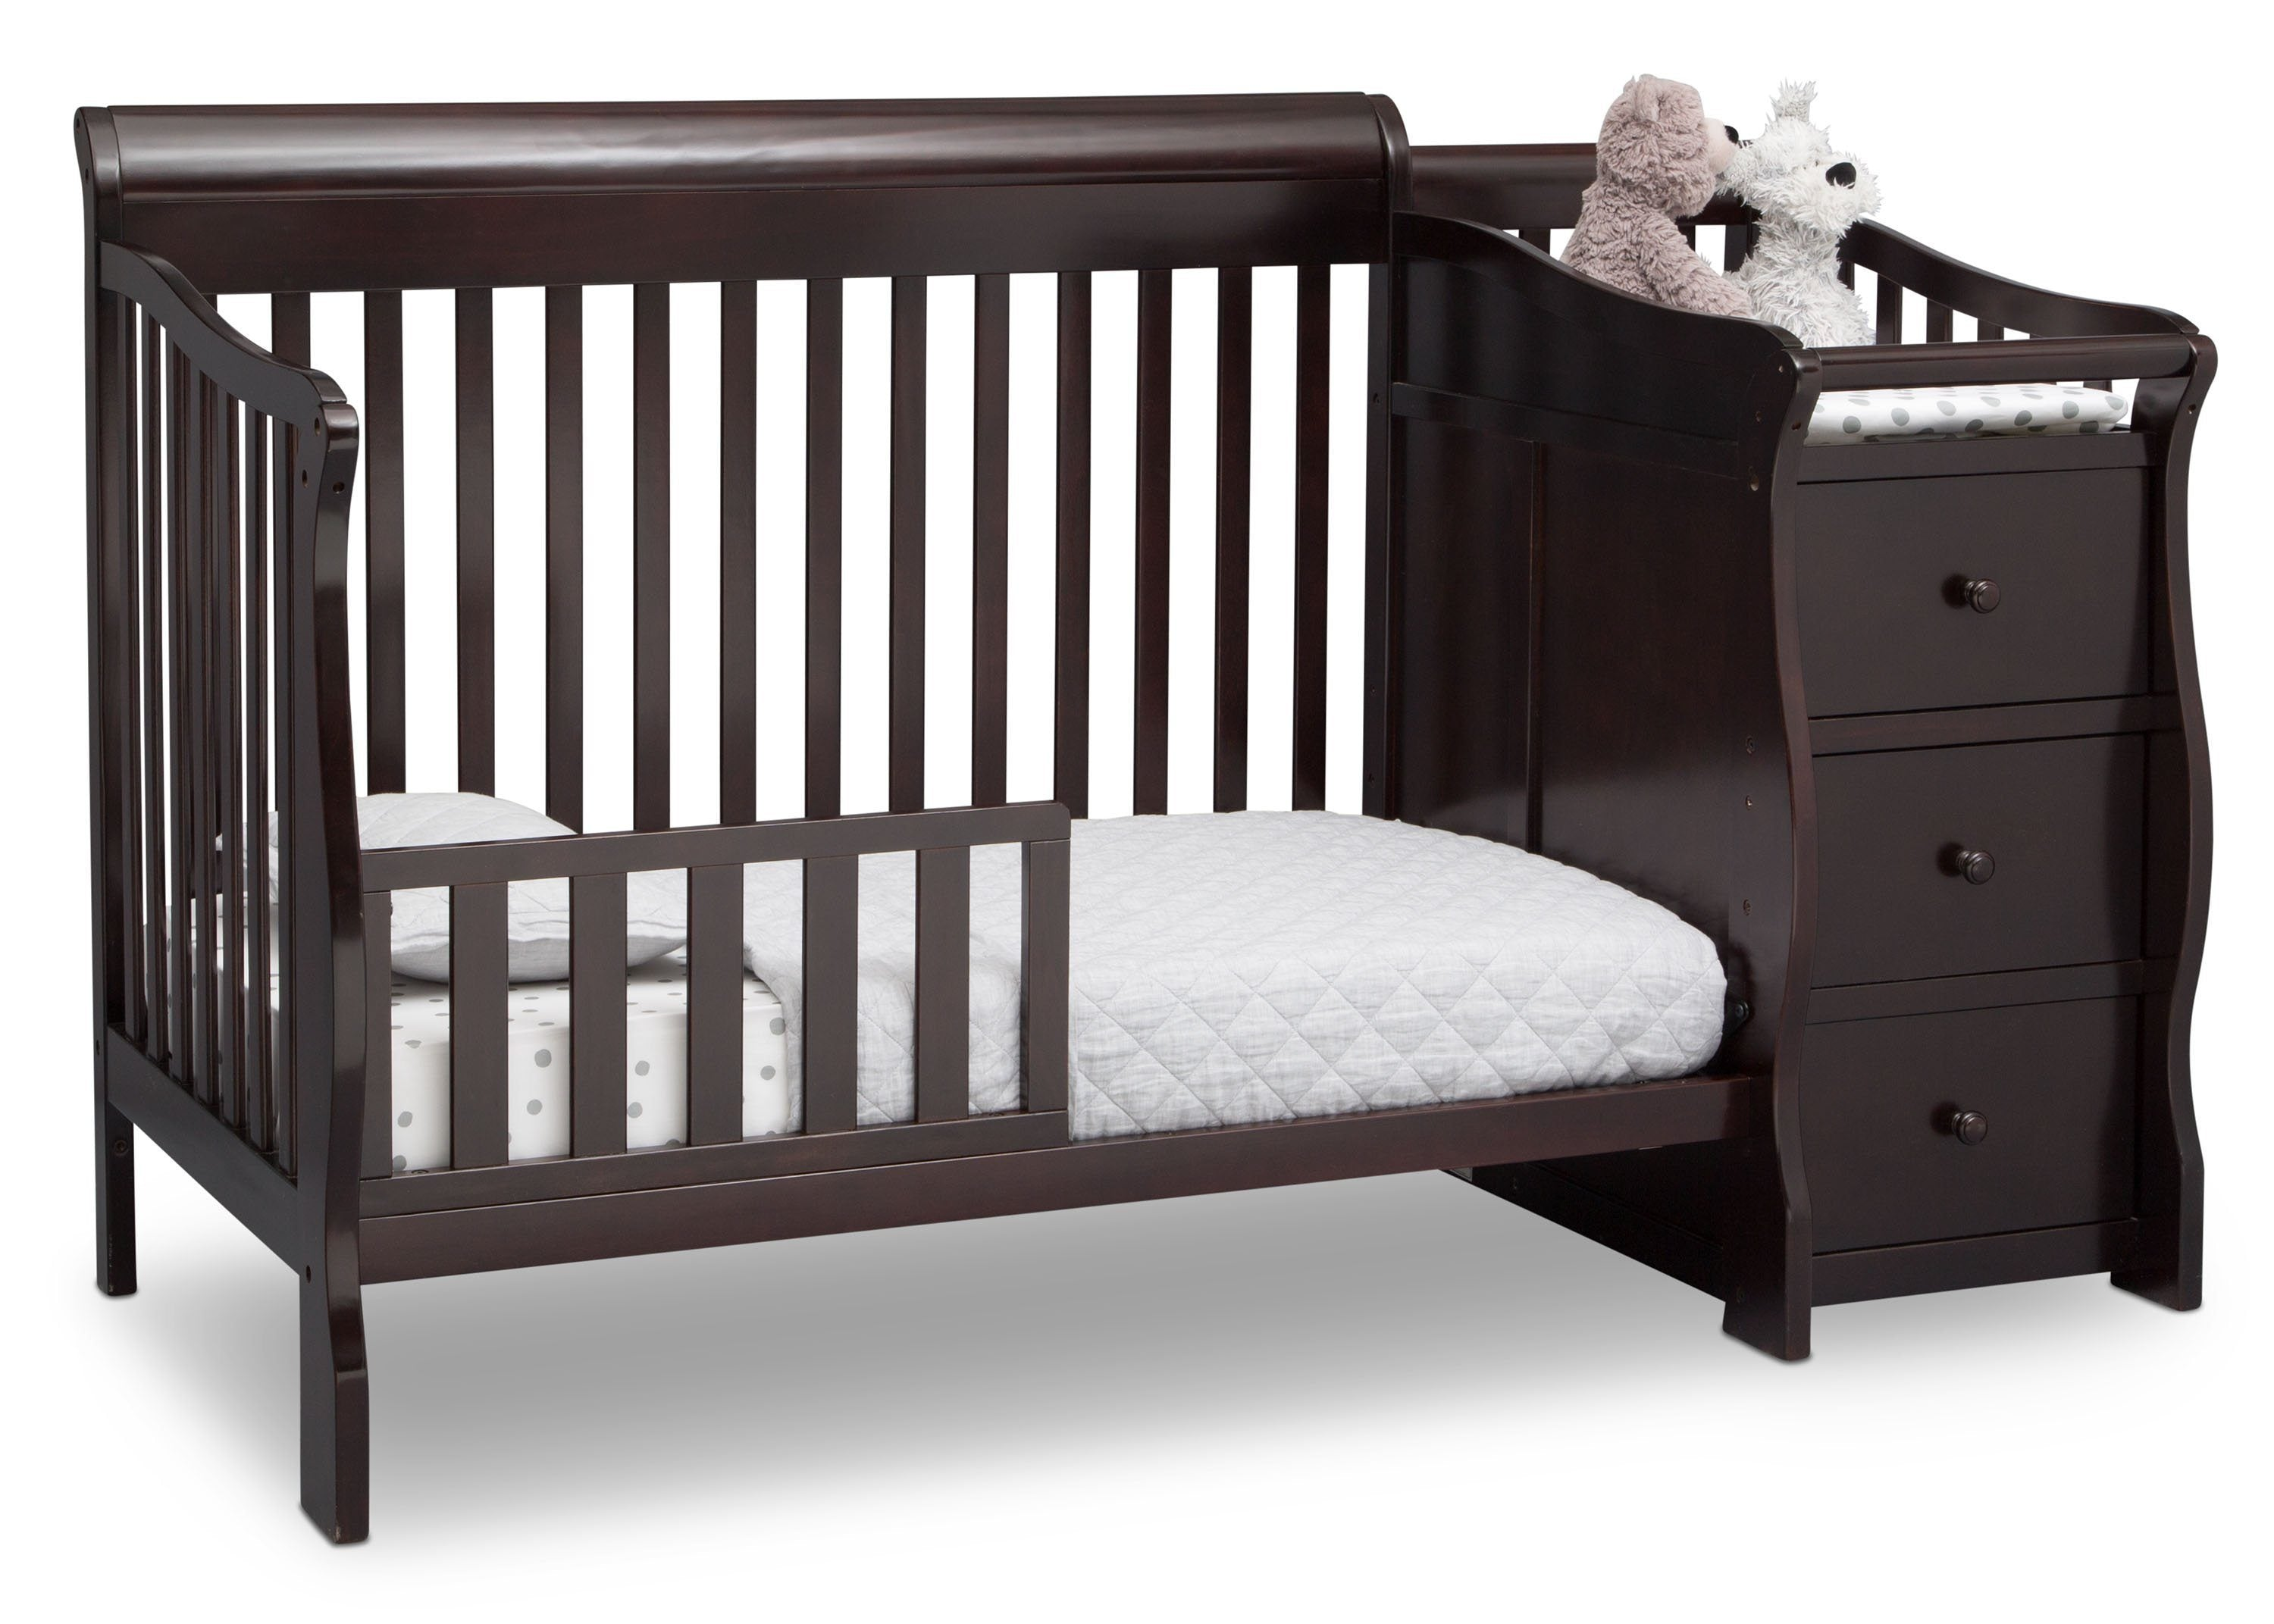 toddler convertible perfect cribs plus constructed changer and table combo with cheap bed pretty ideas changing rugged dresser baby size little of full inspirational is multipurpose crib fosterboyspizza a the